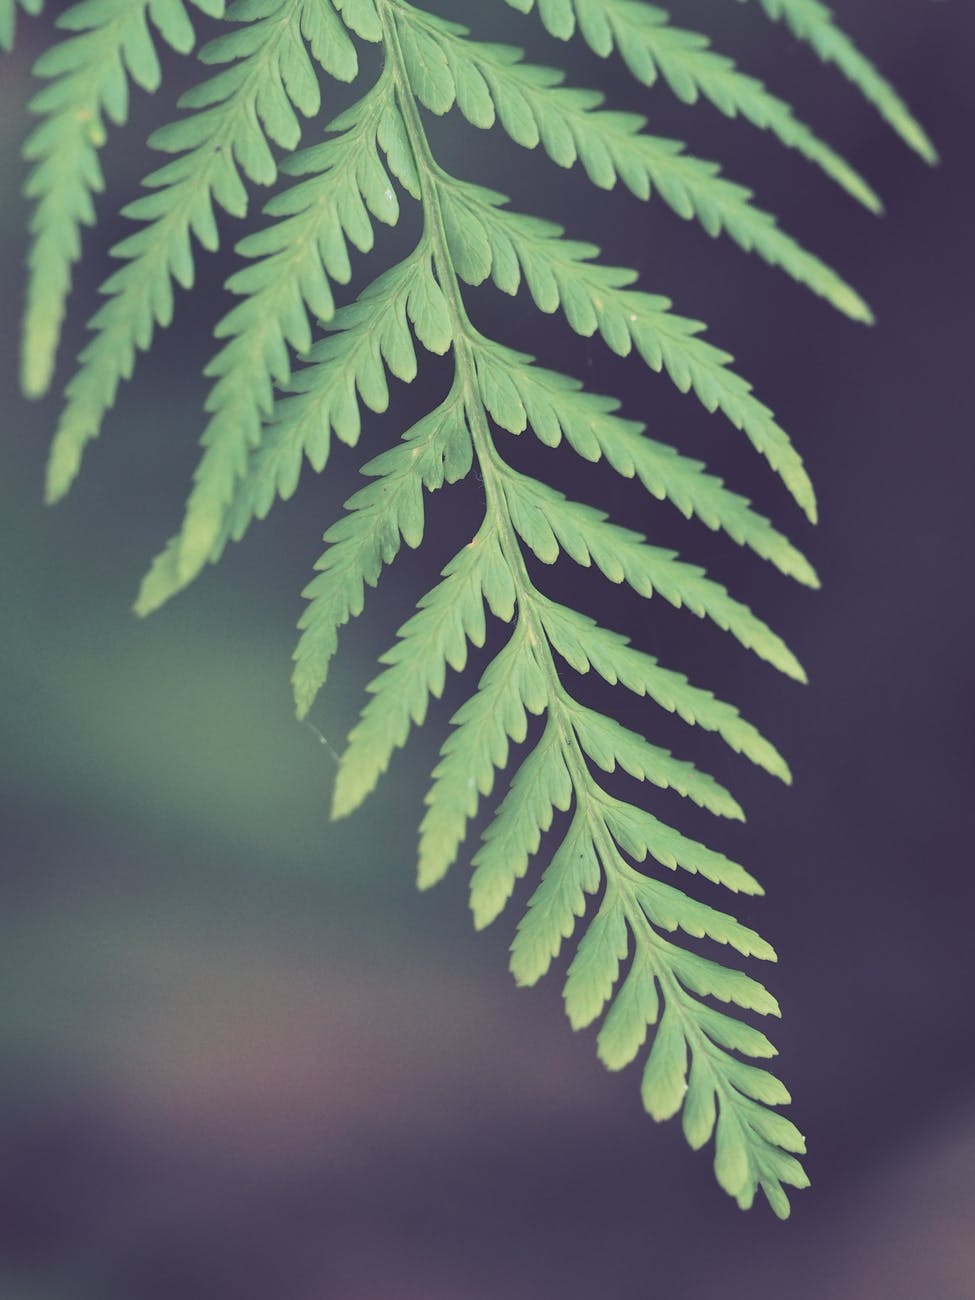 selective photo of green leaf fern